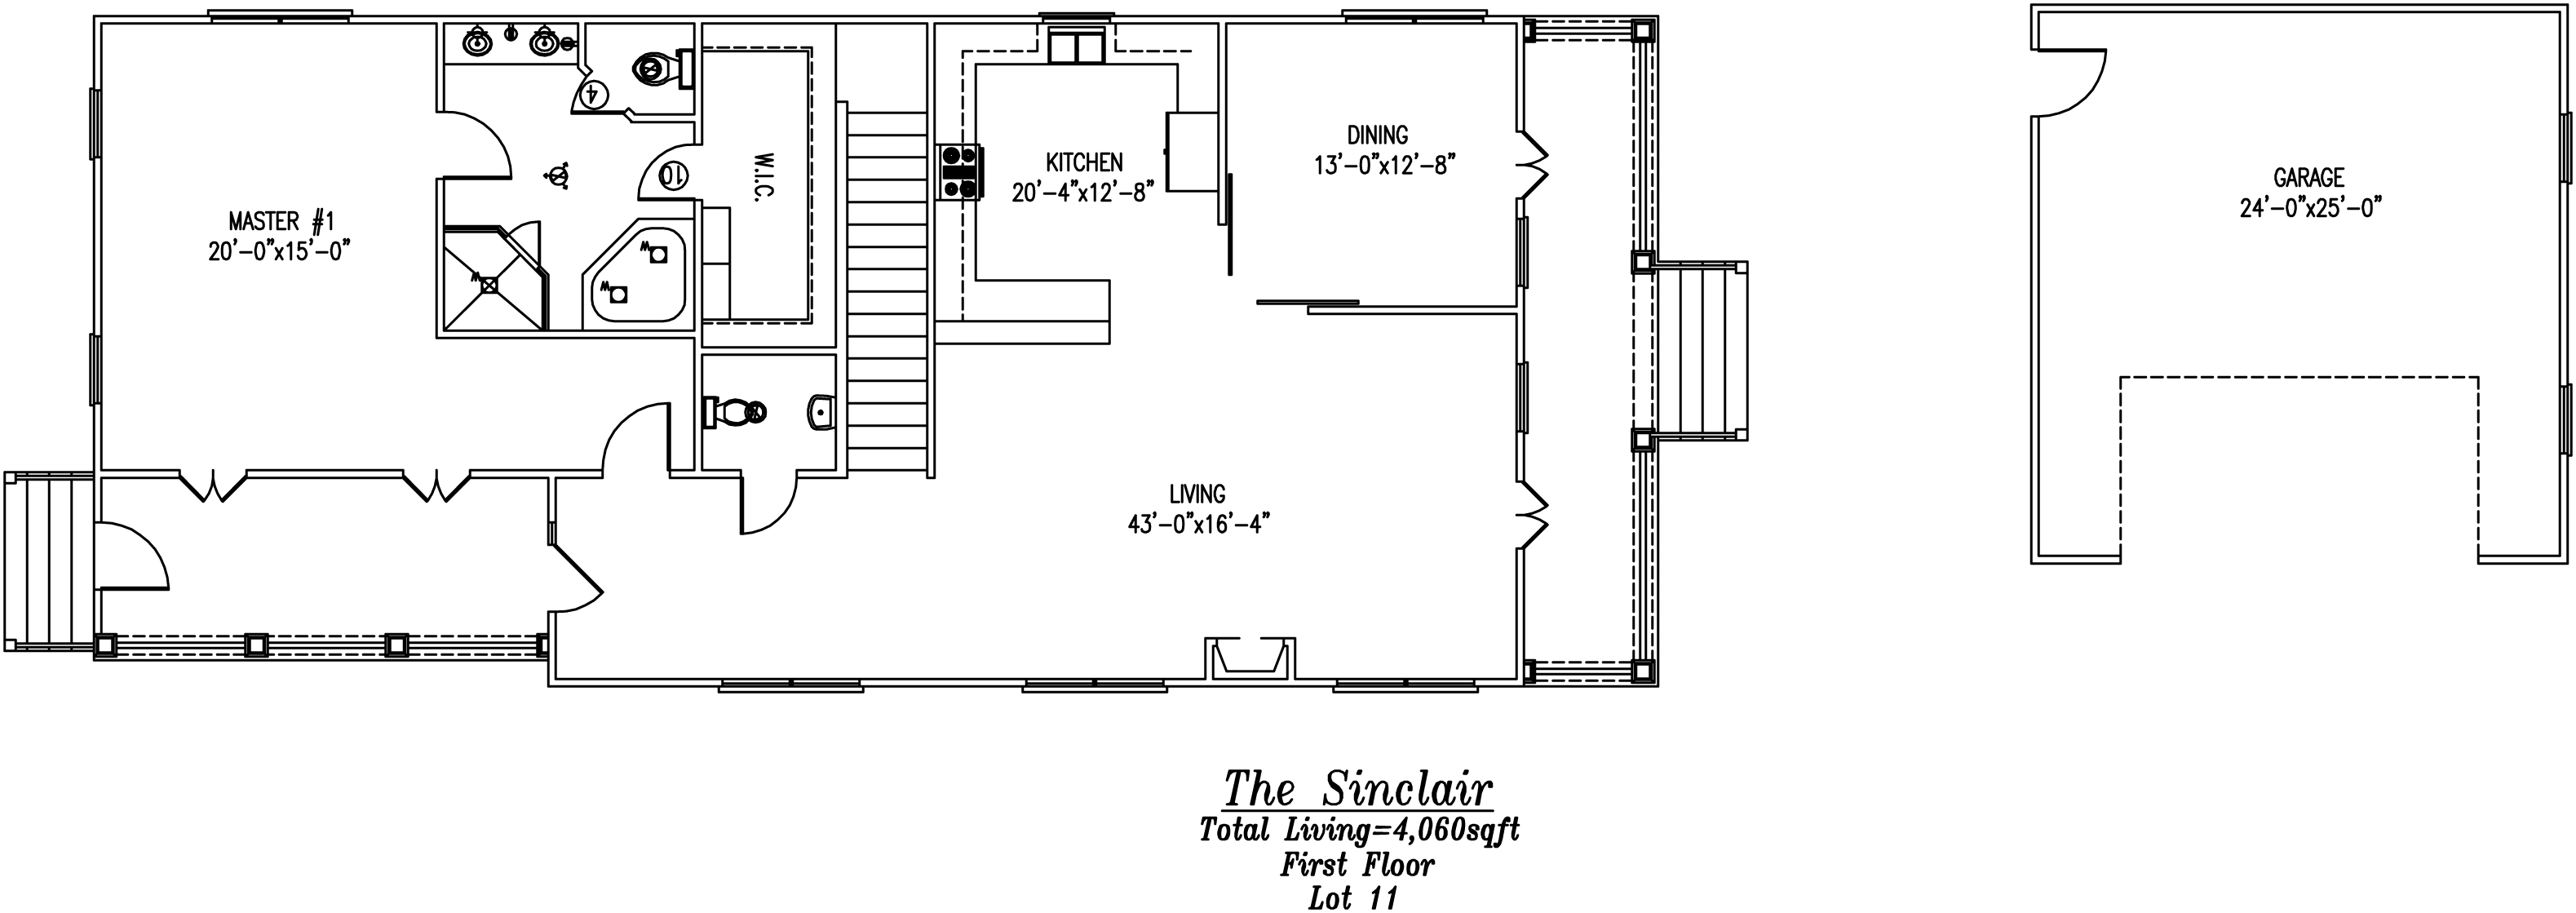 Sinclair First Floor Plan